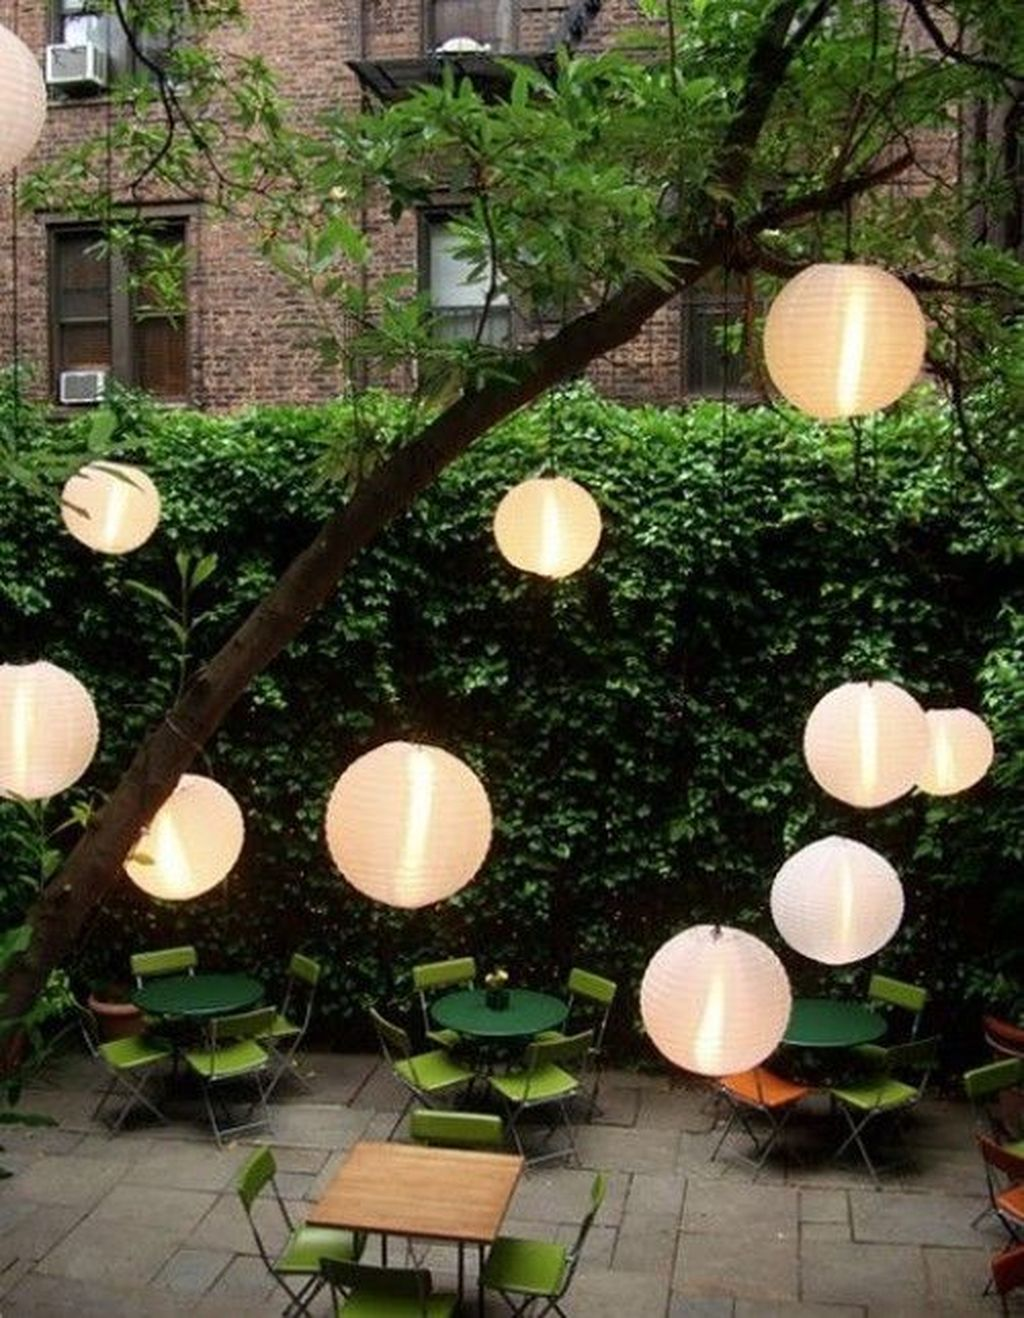 Inspiring Garden Lamps Ideas For Outdoors Decor 12